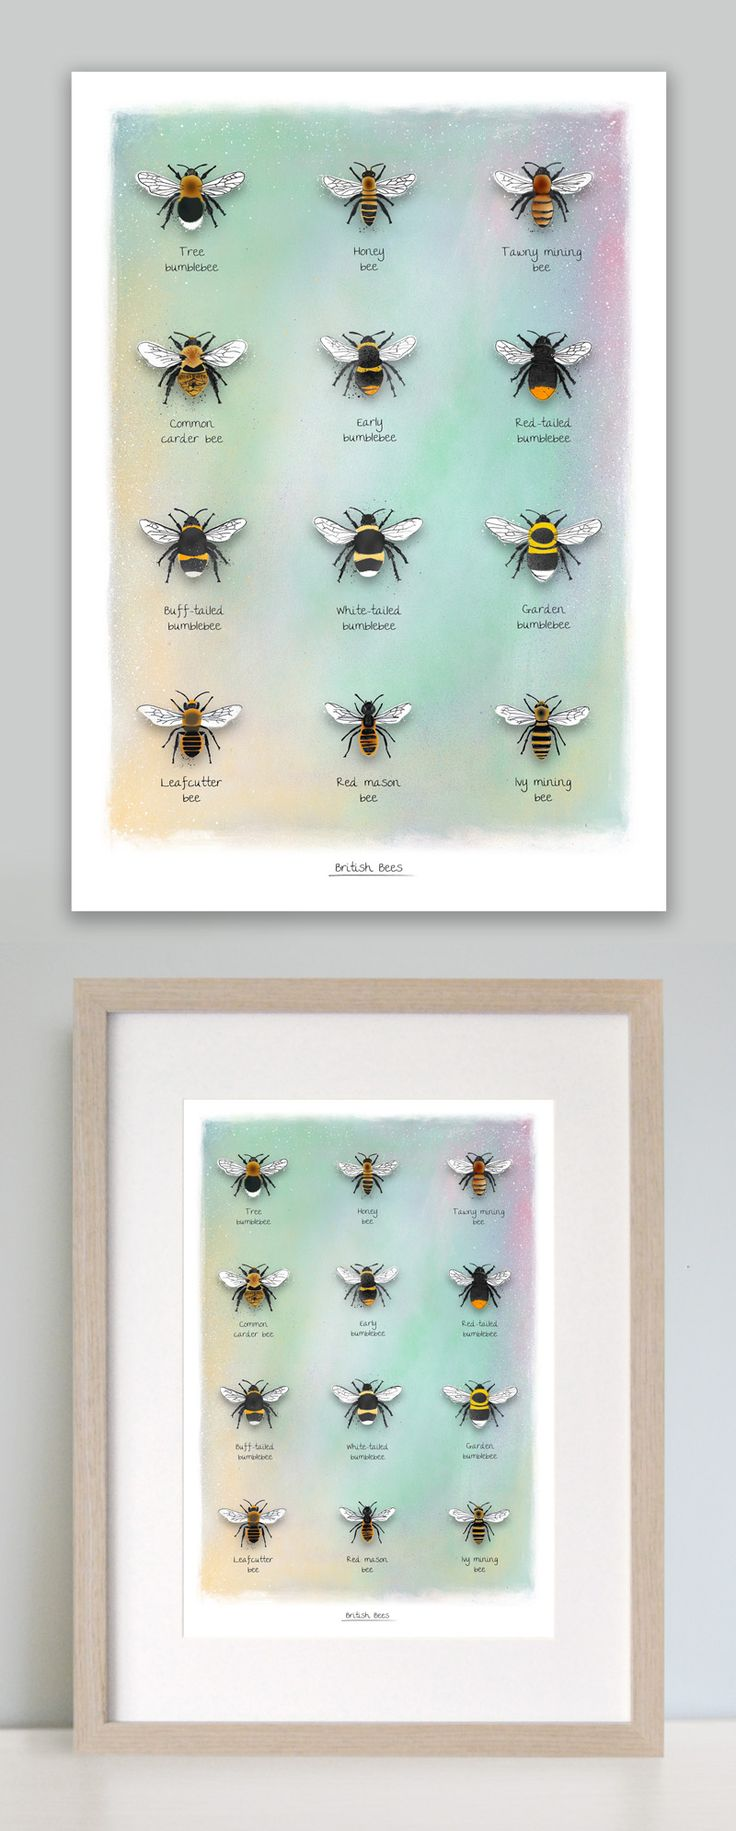 This pretty identification bee print illustrating a collection of British bees makes for a lovely addition to any home bringing nature indoors. Available in A4 and A3 sizes this illustration features the most common of British bees including: Tree bumblebee, honeybee, Tawny mining bee, Common carder bee, Early bumblebee, Red tailed bumblebee, Buff-tailed bumblebee, White-tailed bumblebee, Garden bumblebee, Leafcutter bee, Red mason bee and the Ivy mining bee. www.leemorris.org.uk